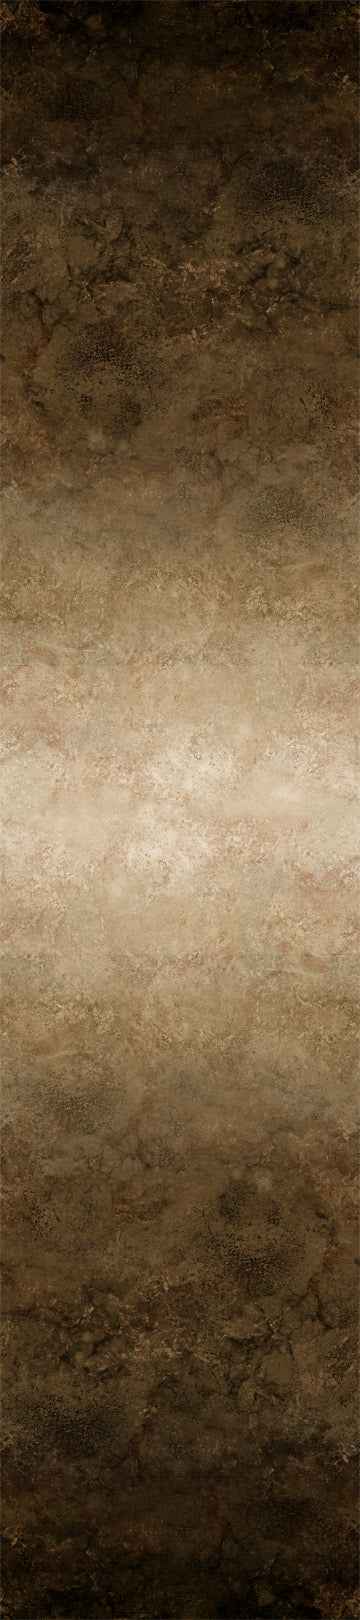 "Brown Ombre 108"" fabric by Northcott, Stonehenge Ombre Wide, B39433-97"